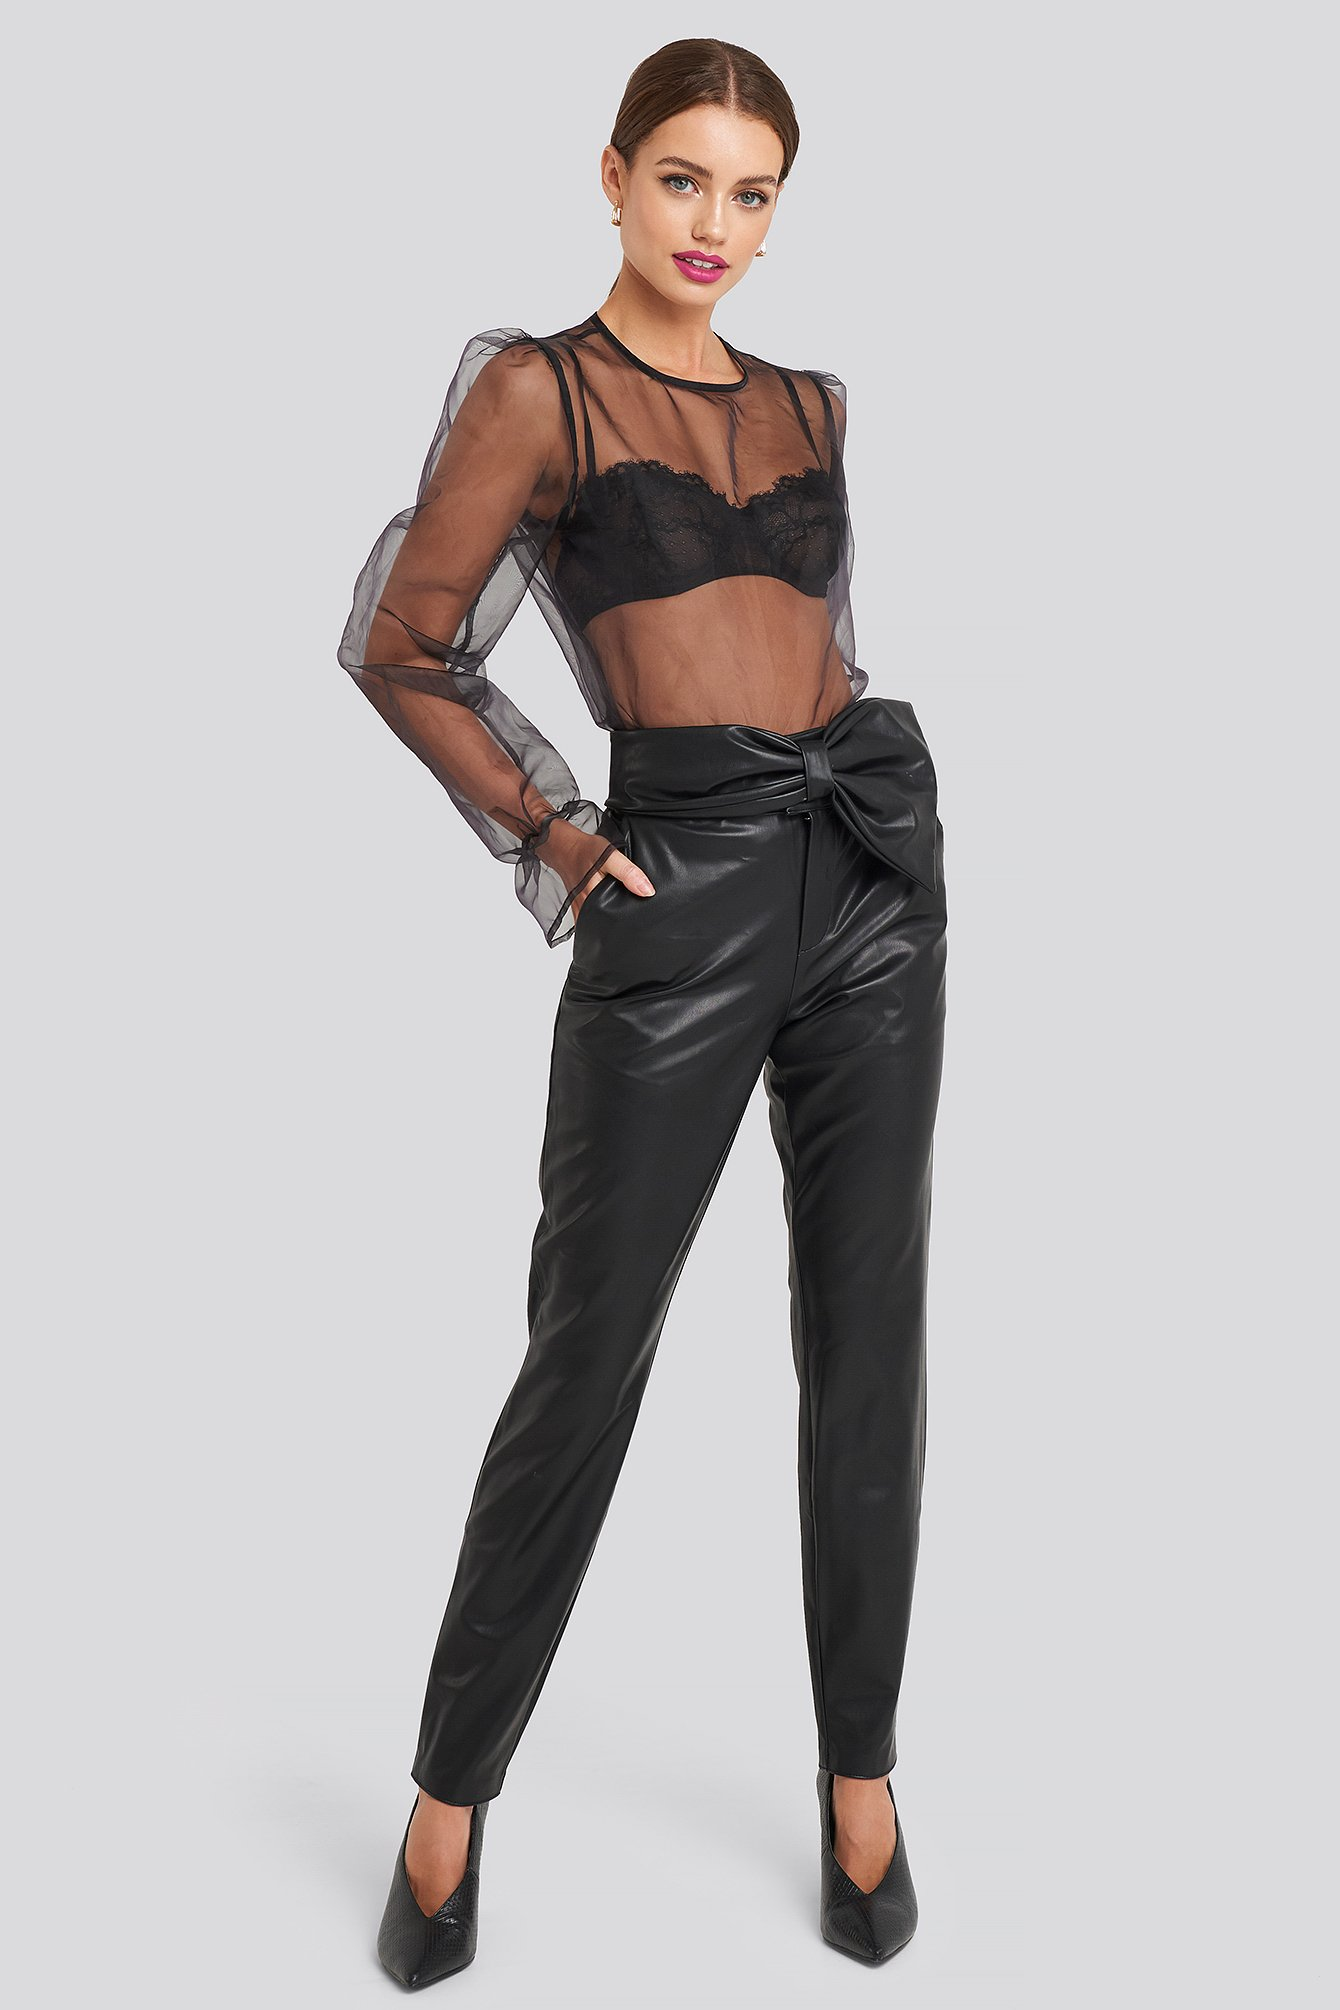 na-kd party -  Bow Detail Faux Leather Pants - Black